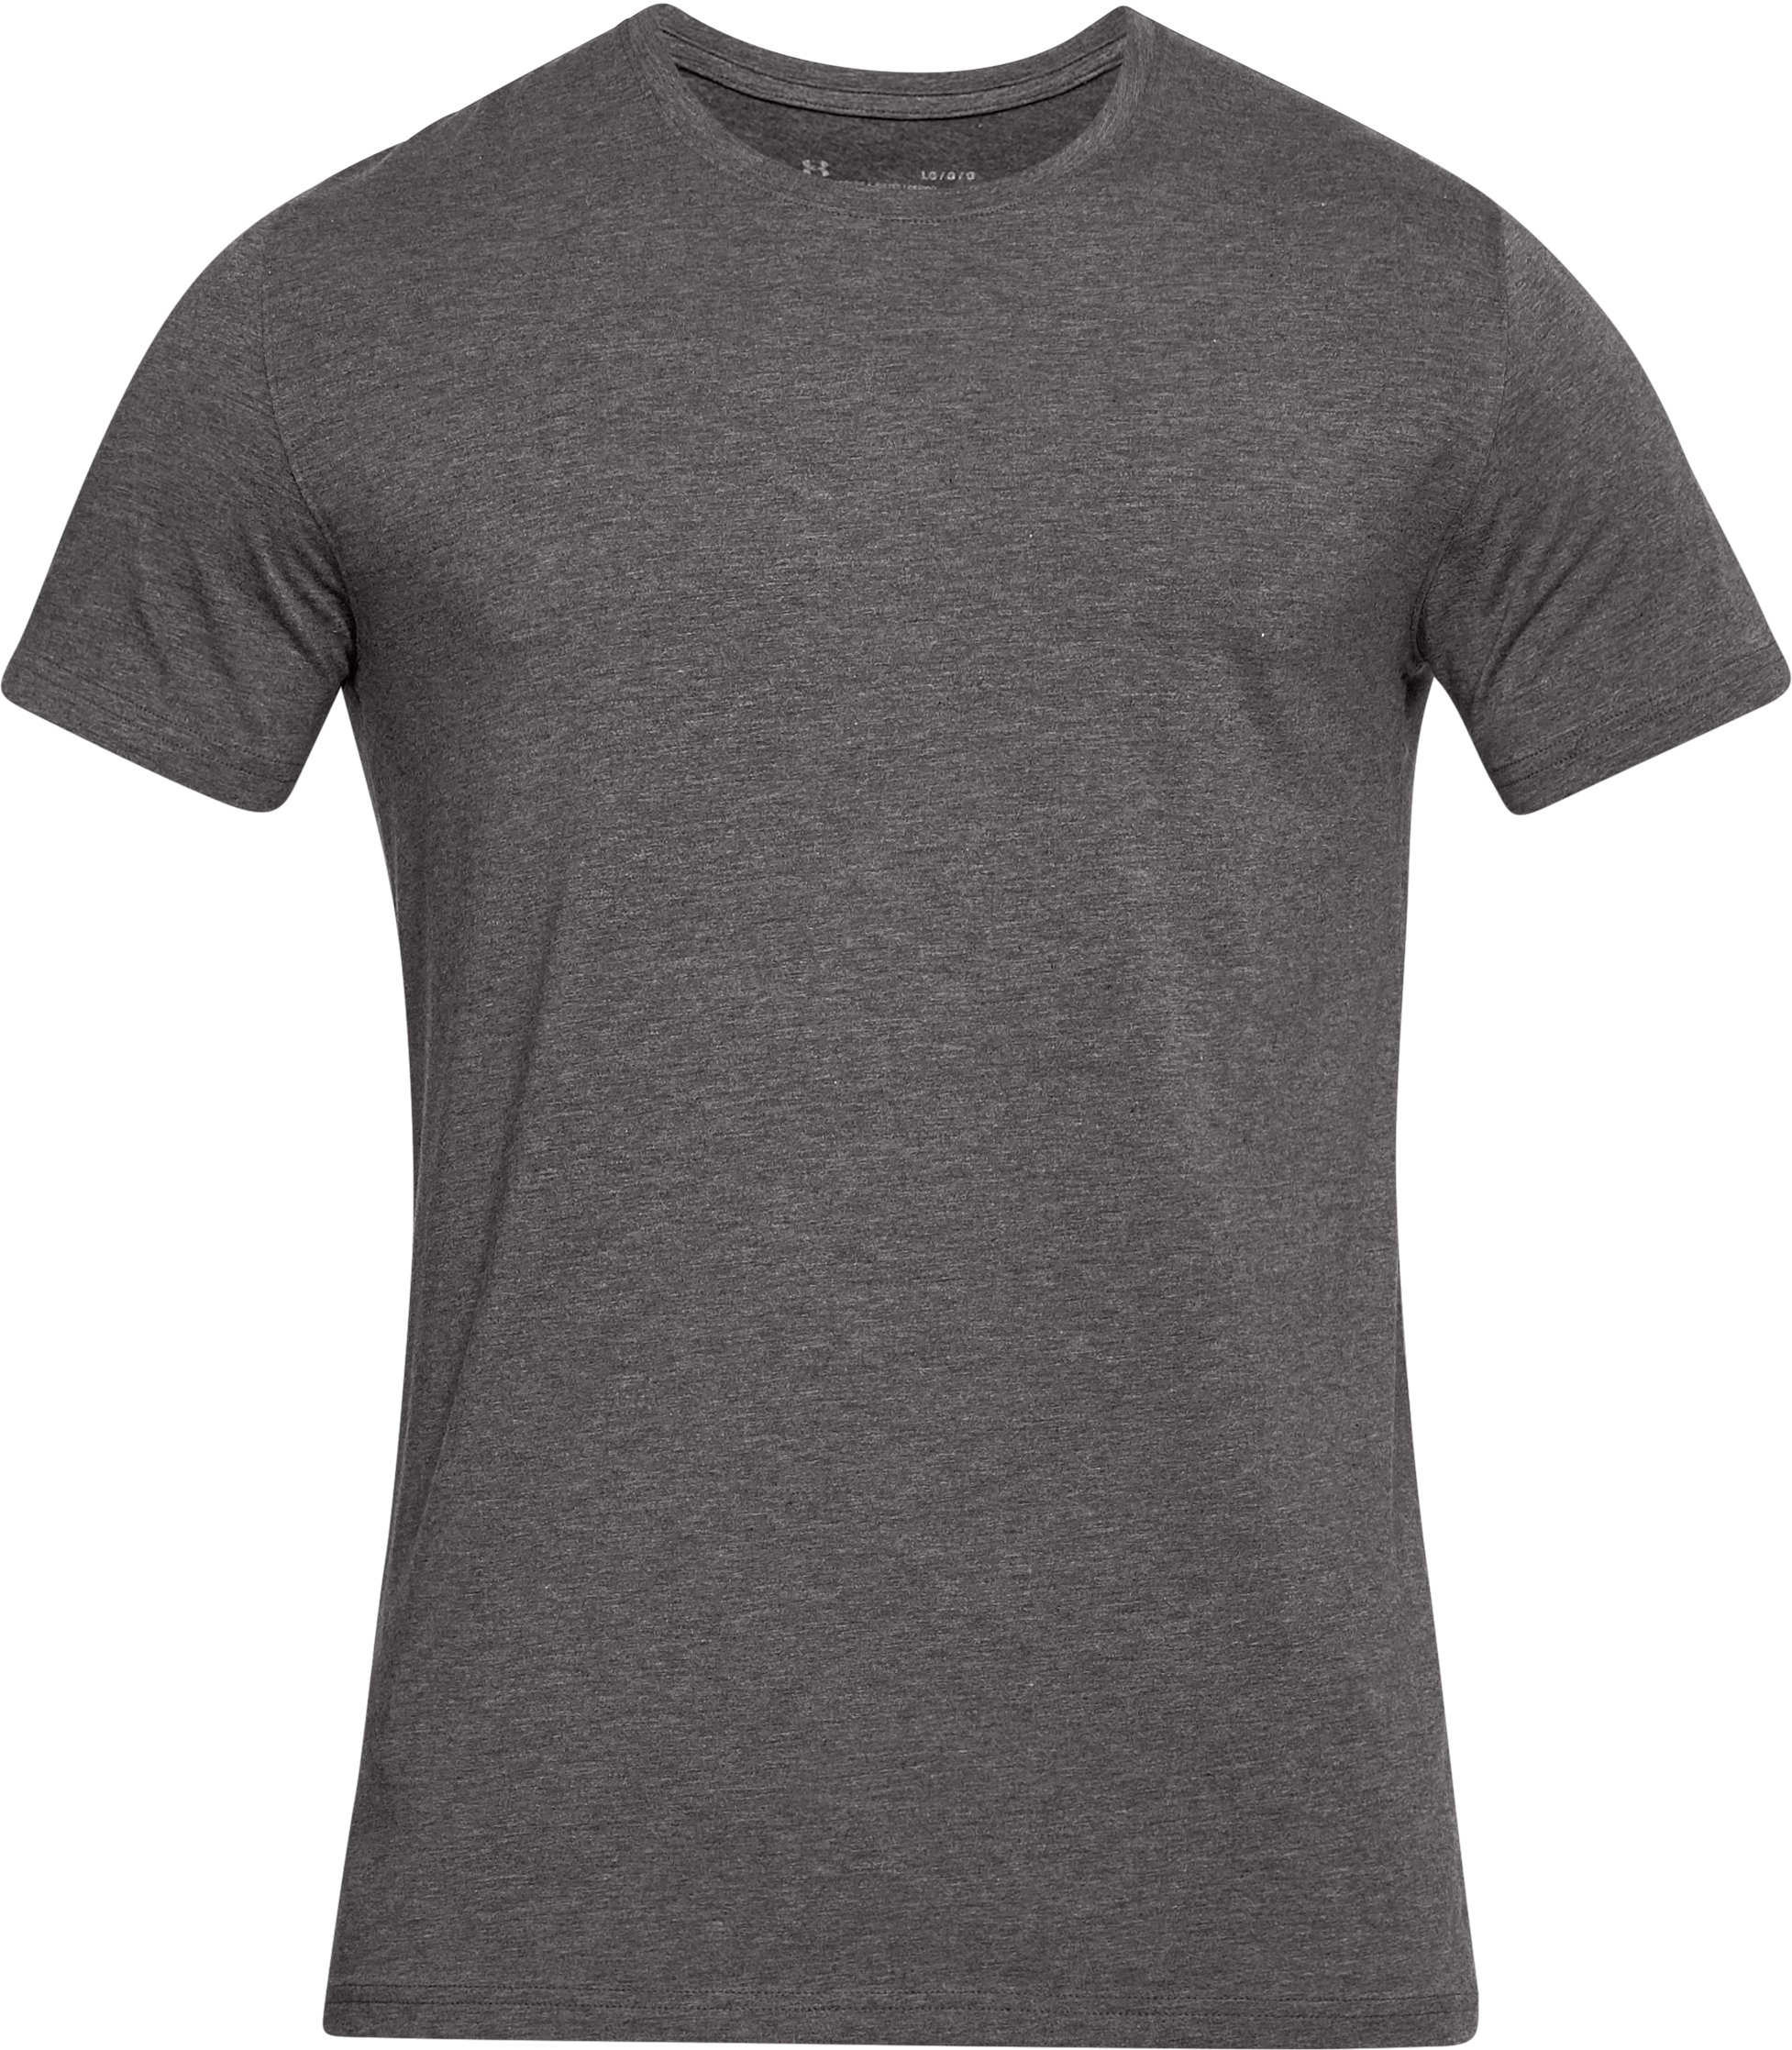 Men's Charged Cotton® Crew Under Shirt, CHARCOAL MEDIUM HEATHER, undefined